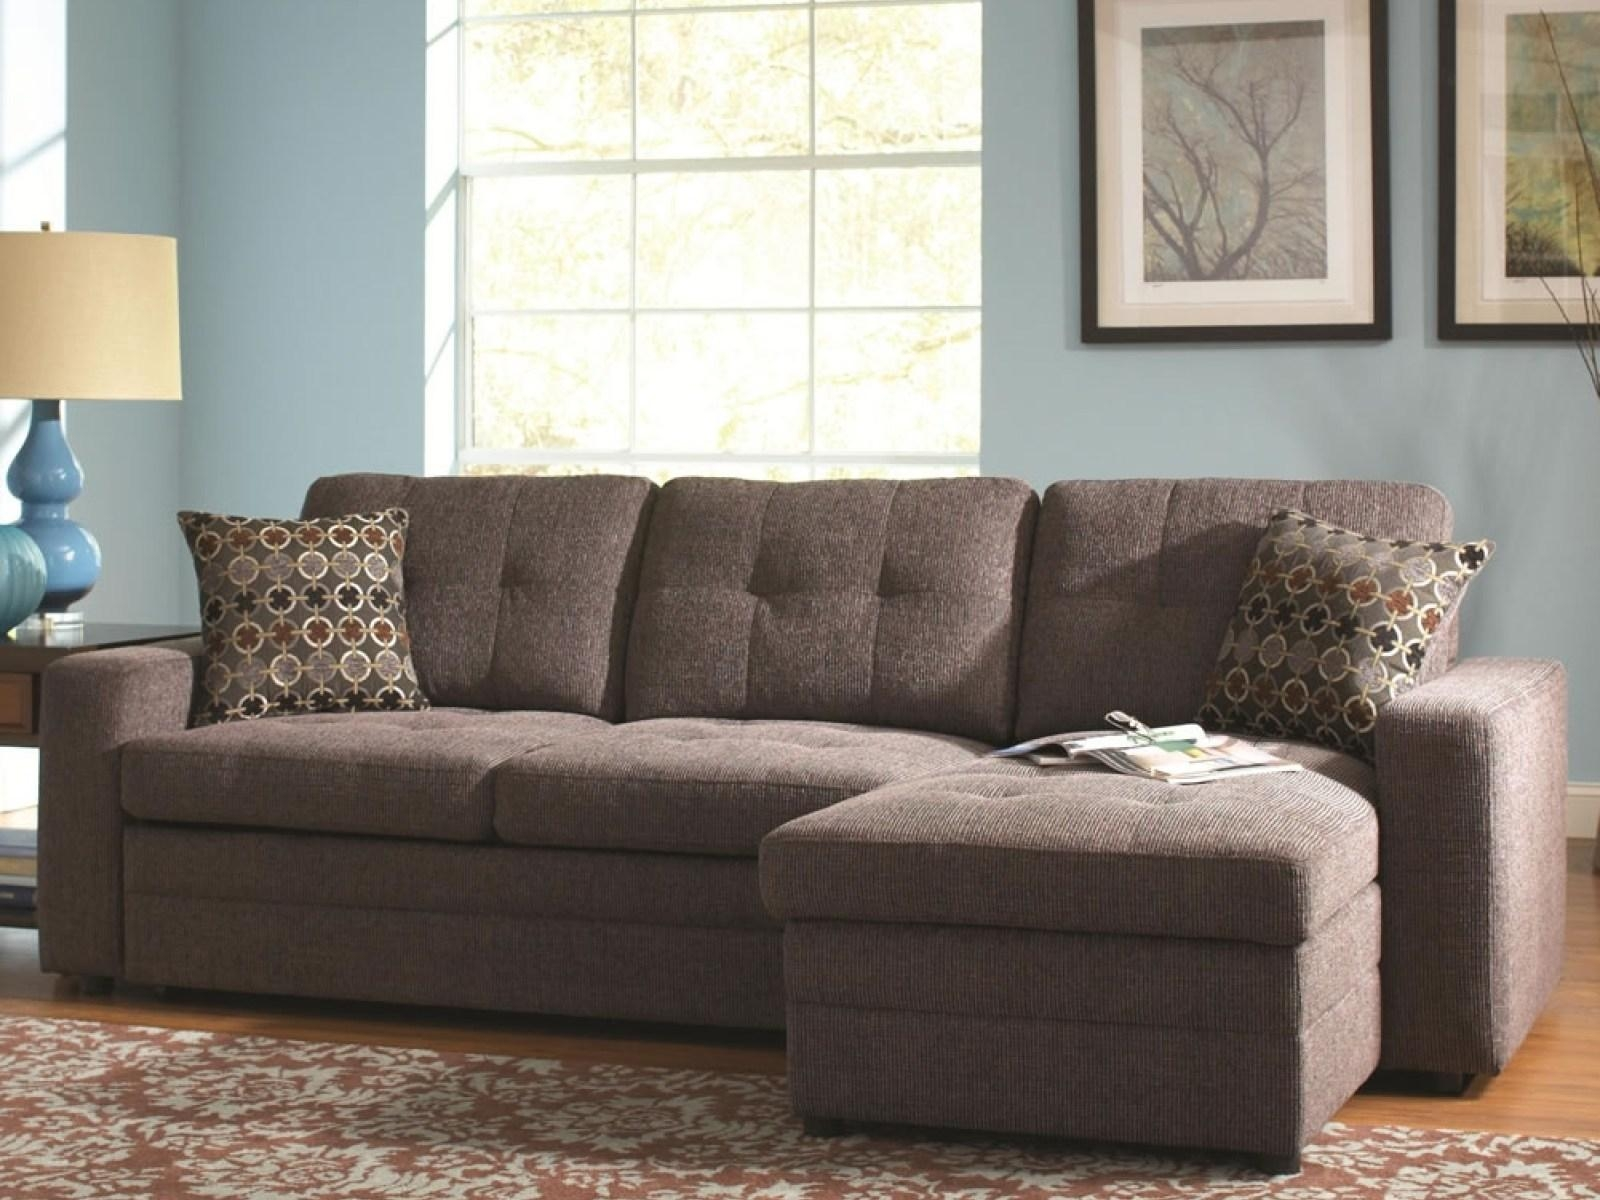 20 Choices of Sectional Small Spaces